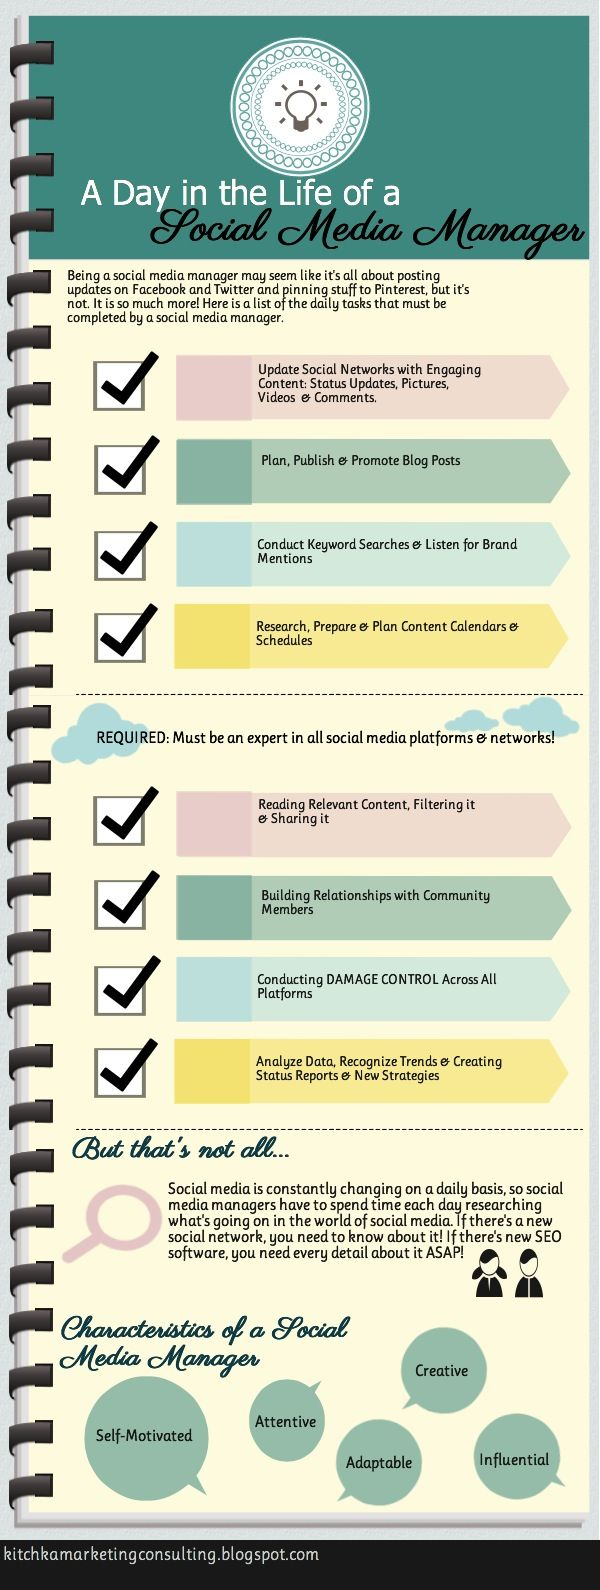 Kitchka Marketing Consulting: Daily Tasks of a Social Media Manager